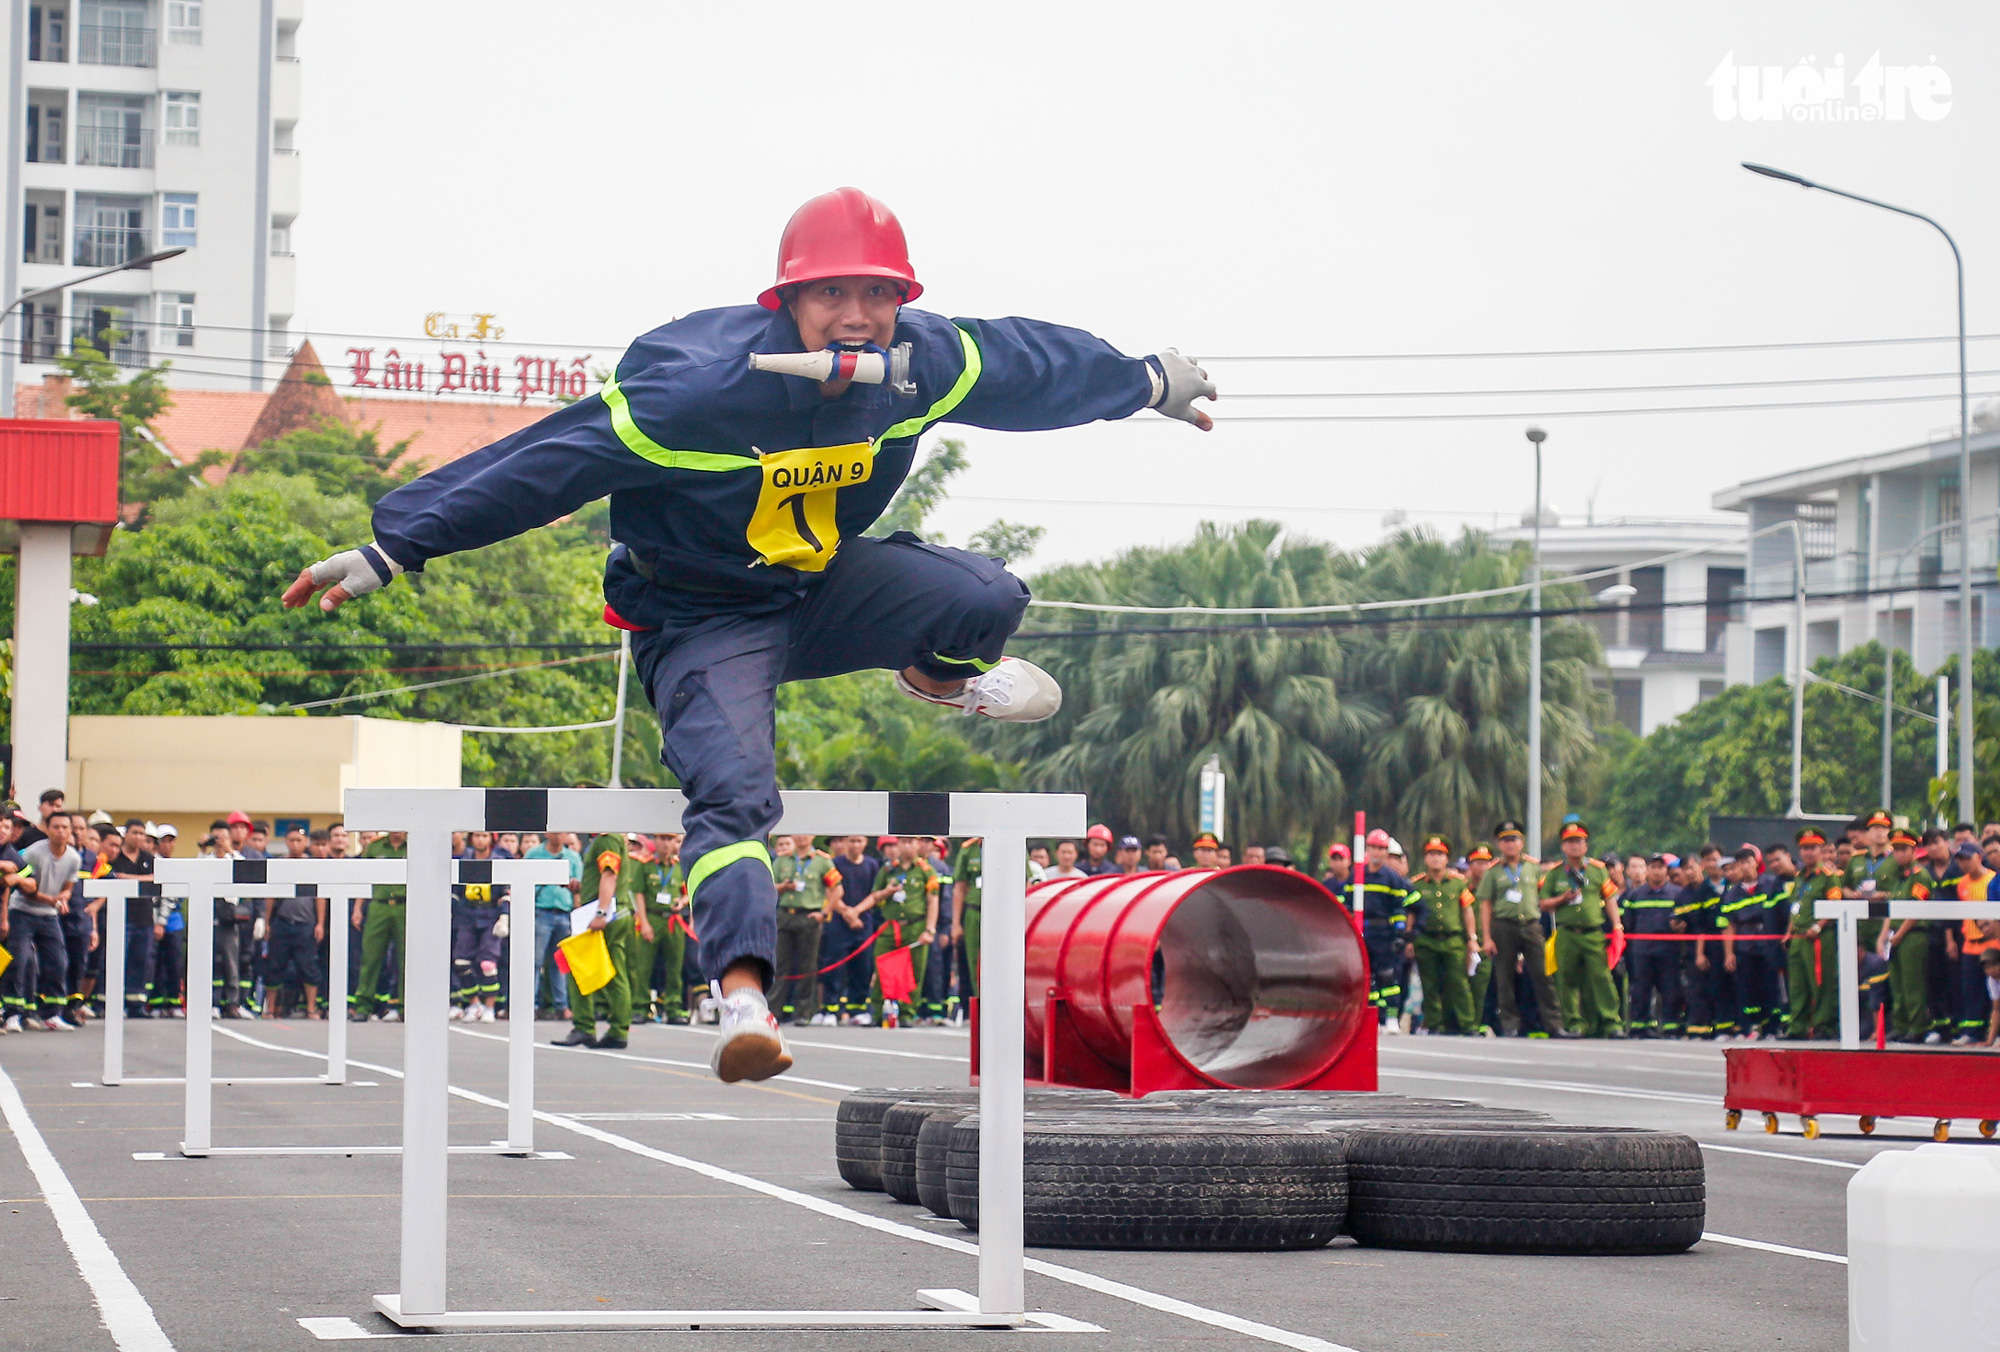 A firefighter participates in an obstacle race during a firefighting and rescue competition in Ho Chi Minh City, June 16, 2020. Photo: Chau Tuan / Tuoi Tre